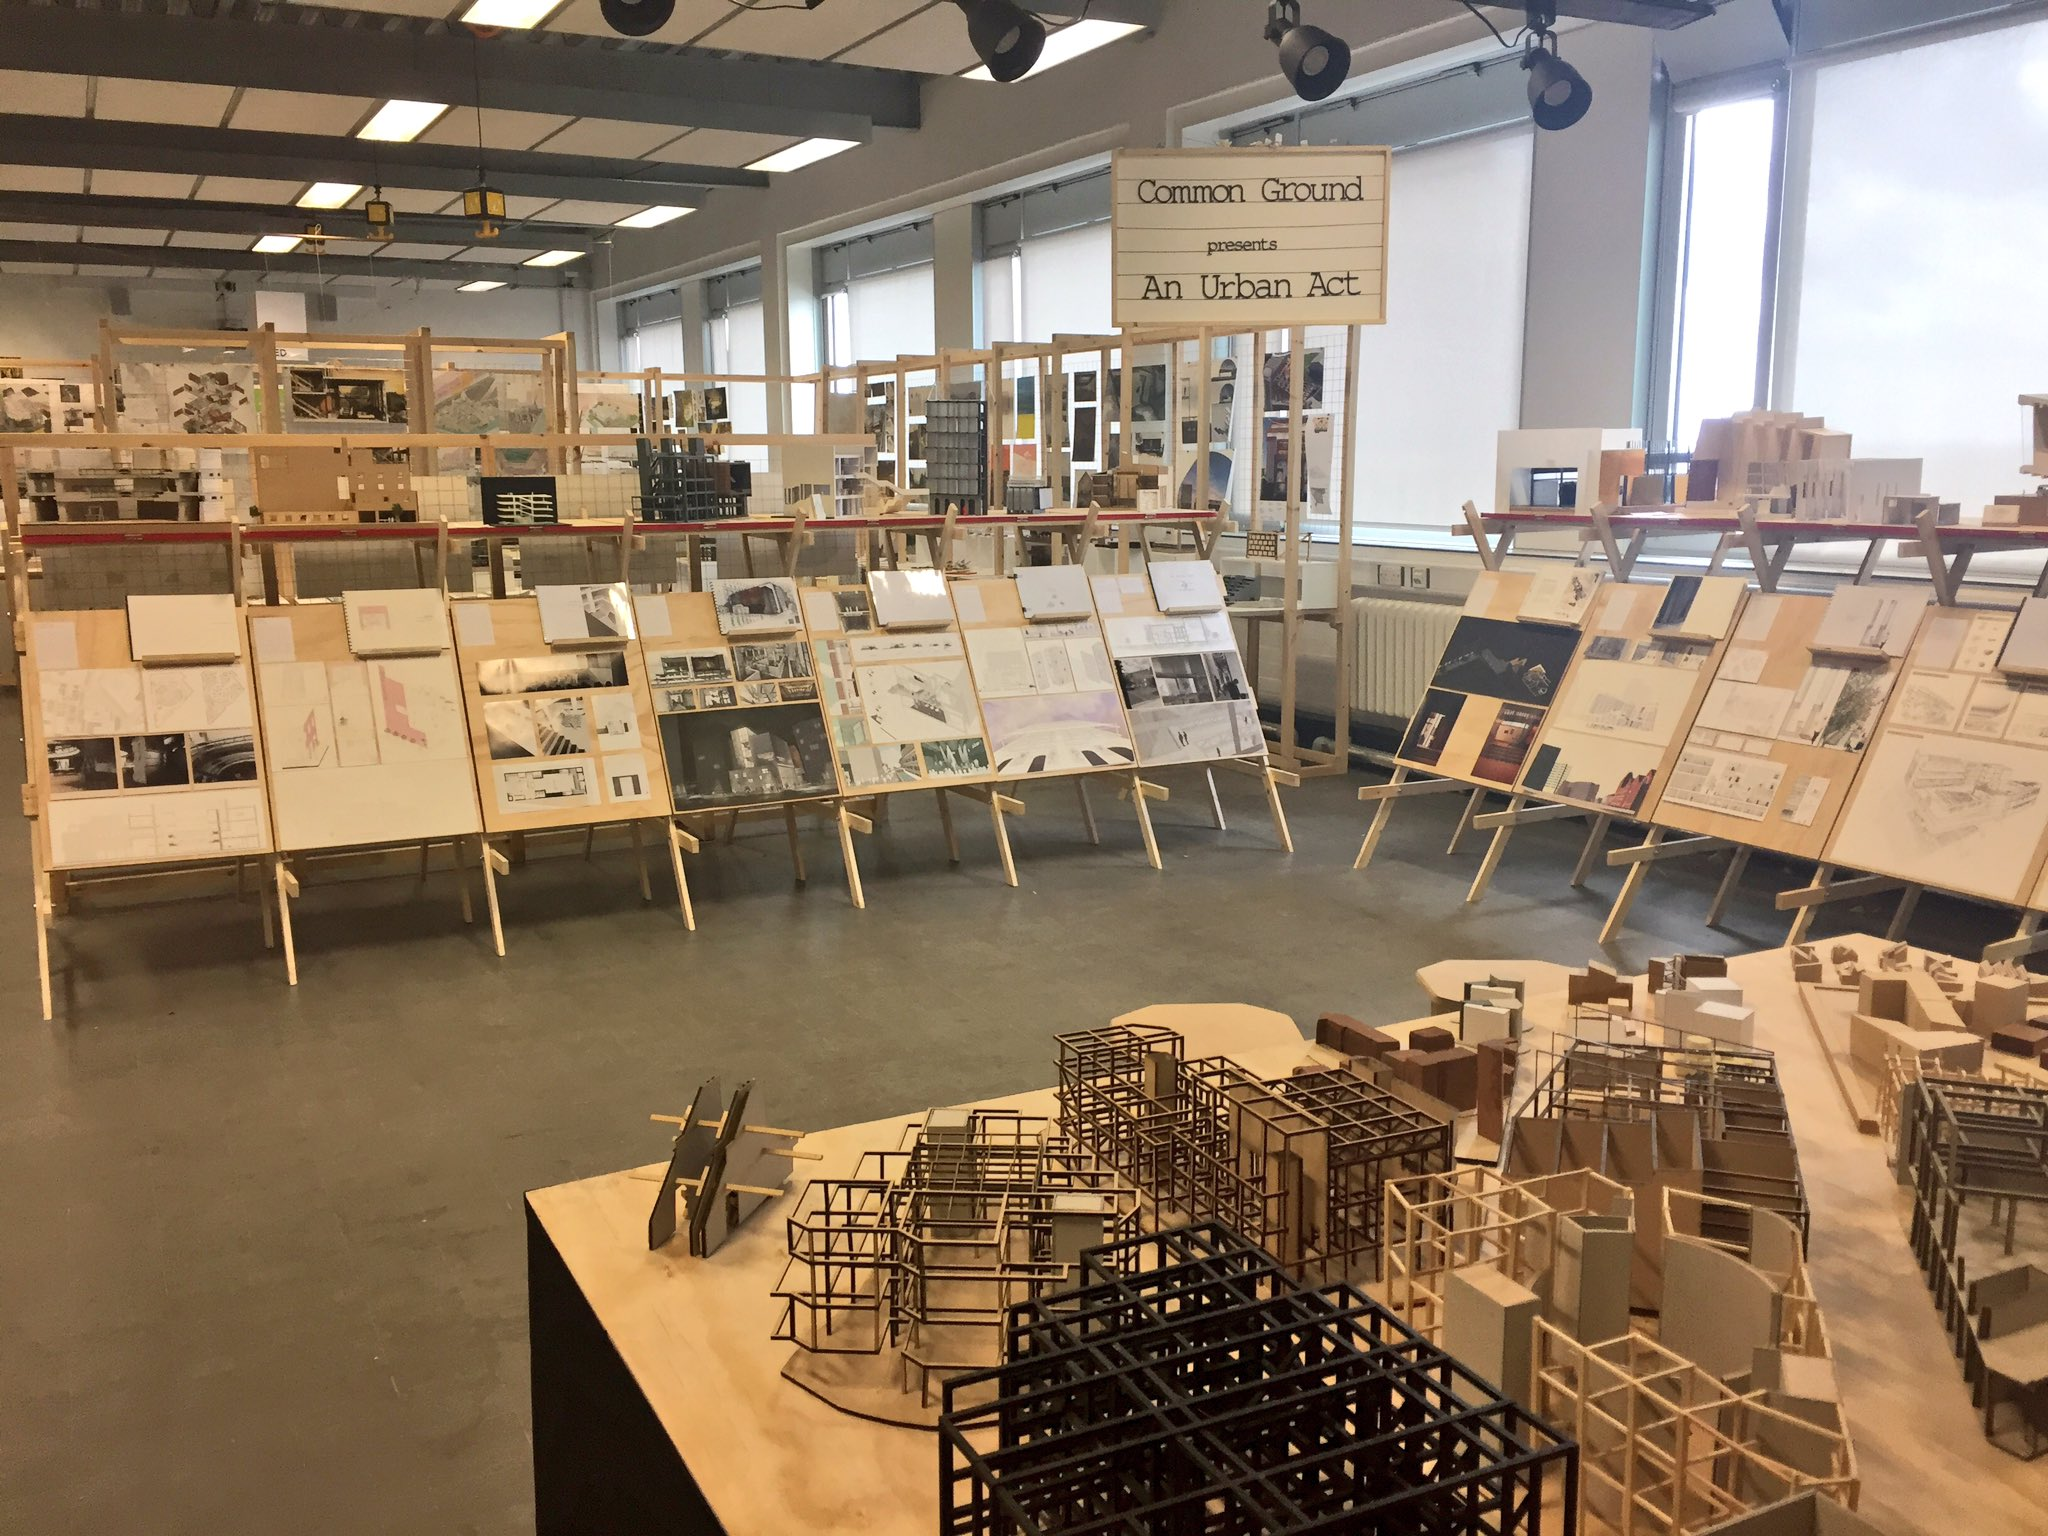 Excellent 2 days external examining at @TheMSArch; engaged students & fantastic work - make sure you visit the exhibition #McrDegreeShow17 https://t.co/lCjGxEwG7R